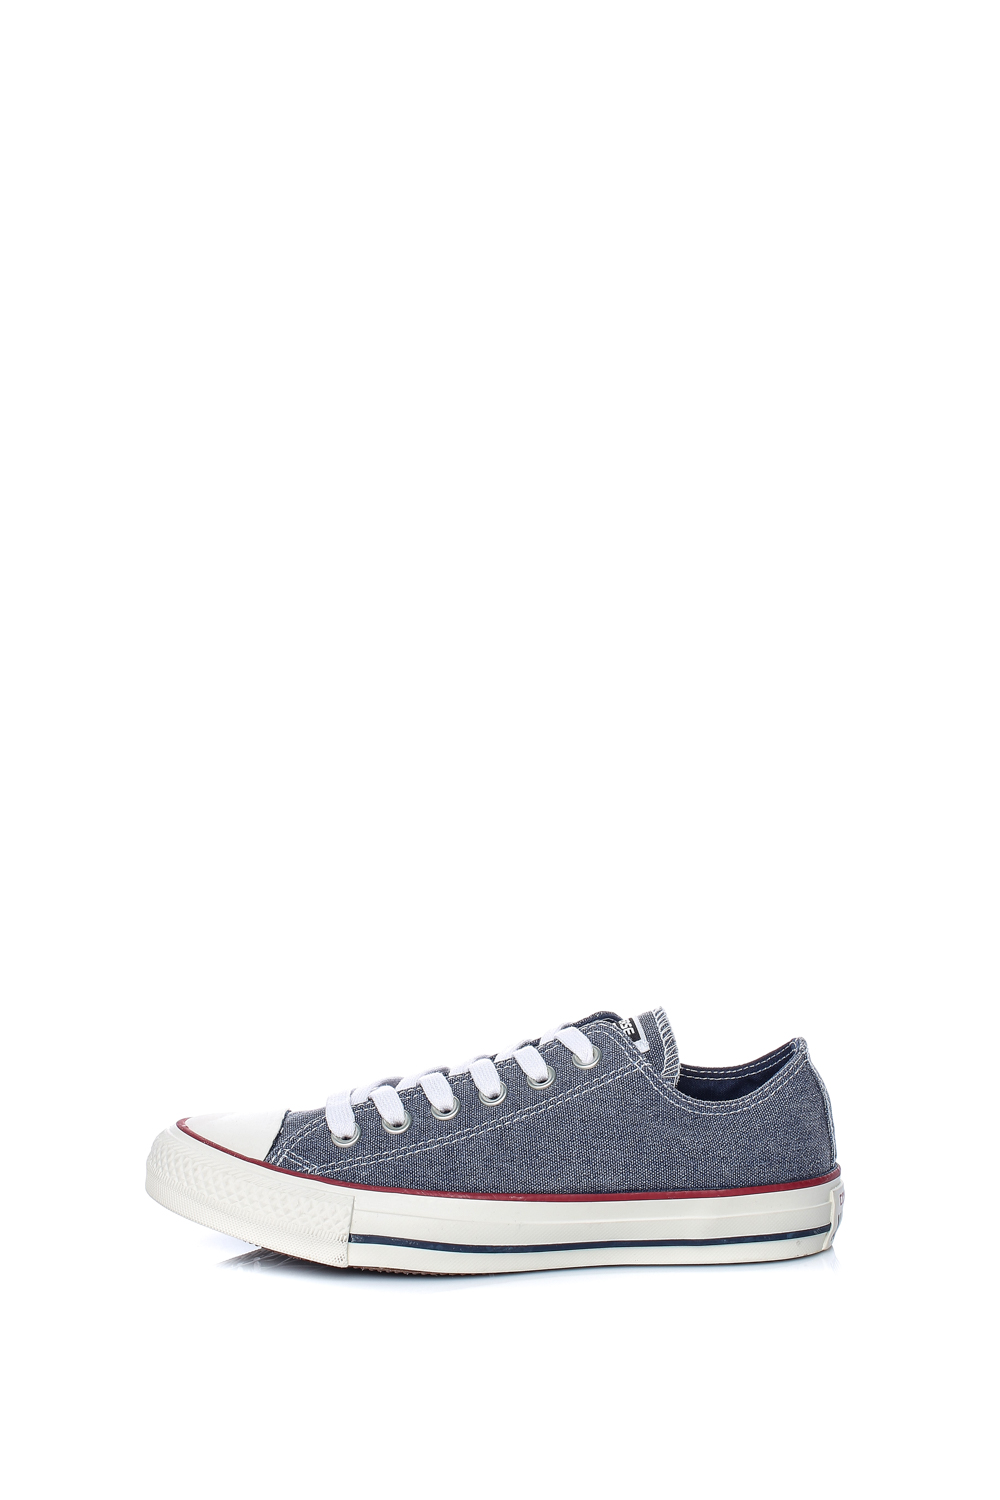 CTAS OX STONE WASH GREY